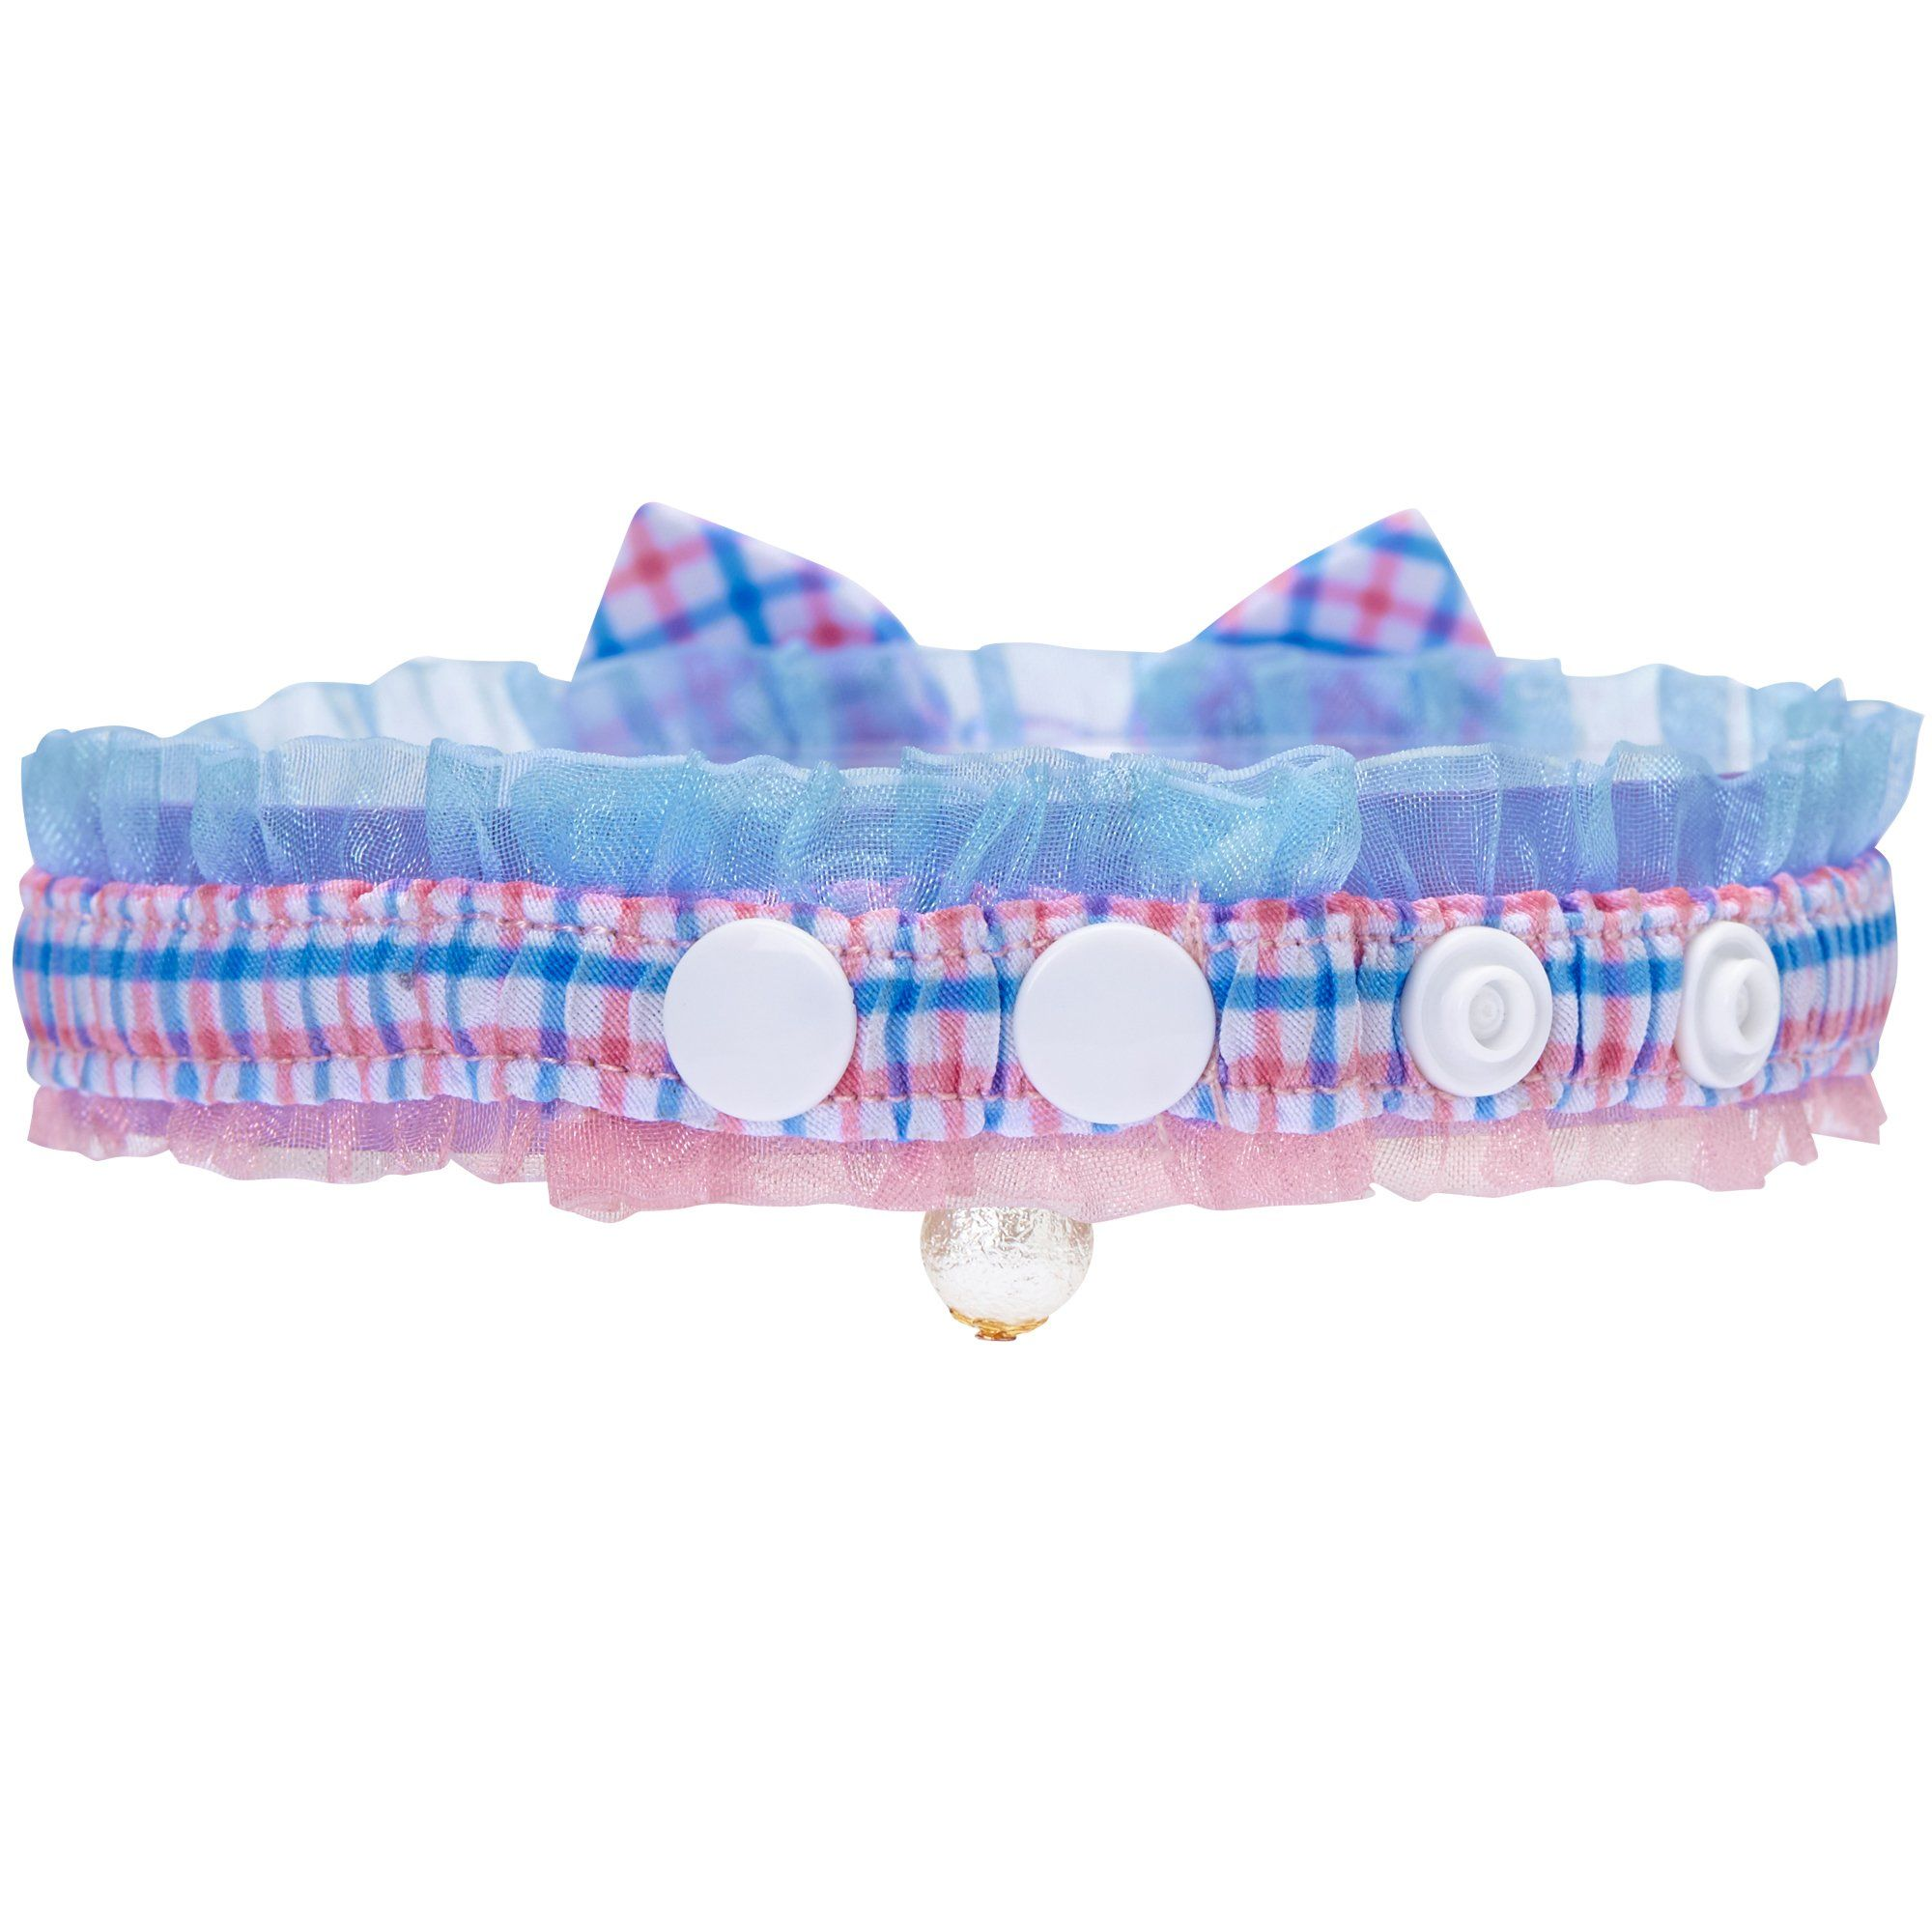 Blueberry Pet 18 Designs Blue Plaid Breakaway Bowtie Cat Collar Lace Choker Necklace With Handmade Bow Tie Cat Collars Breakaway Cat Collars Cat Bowtie Collar